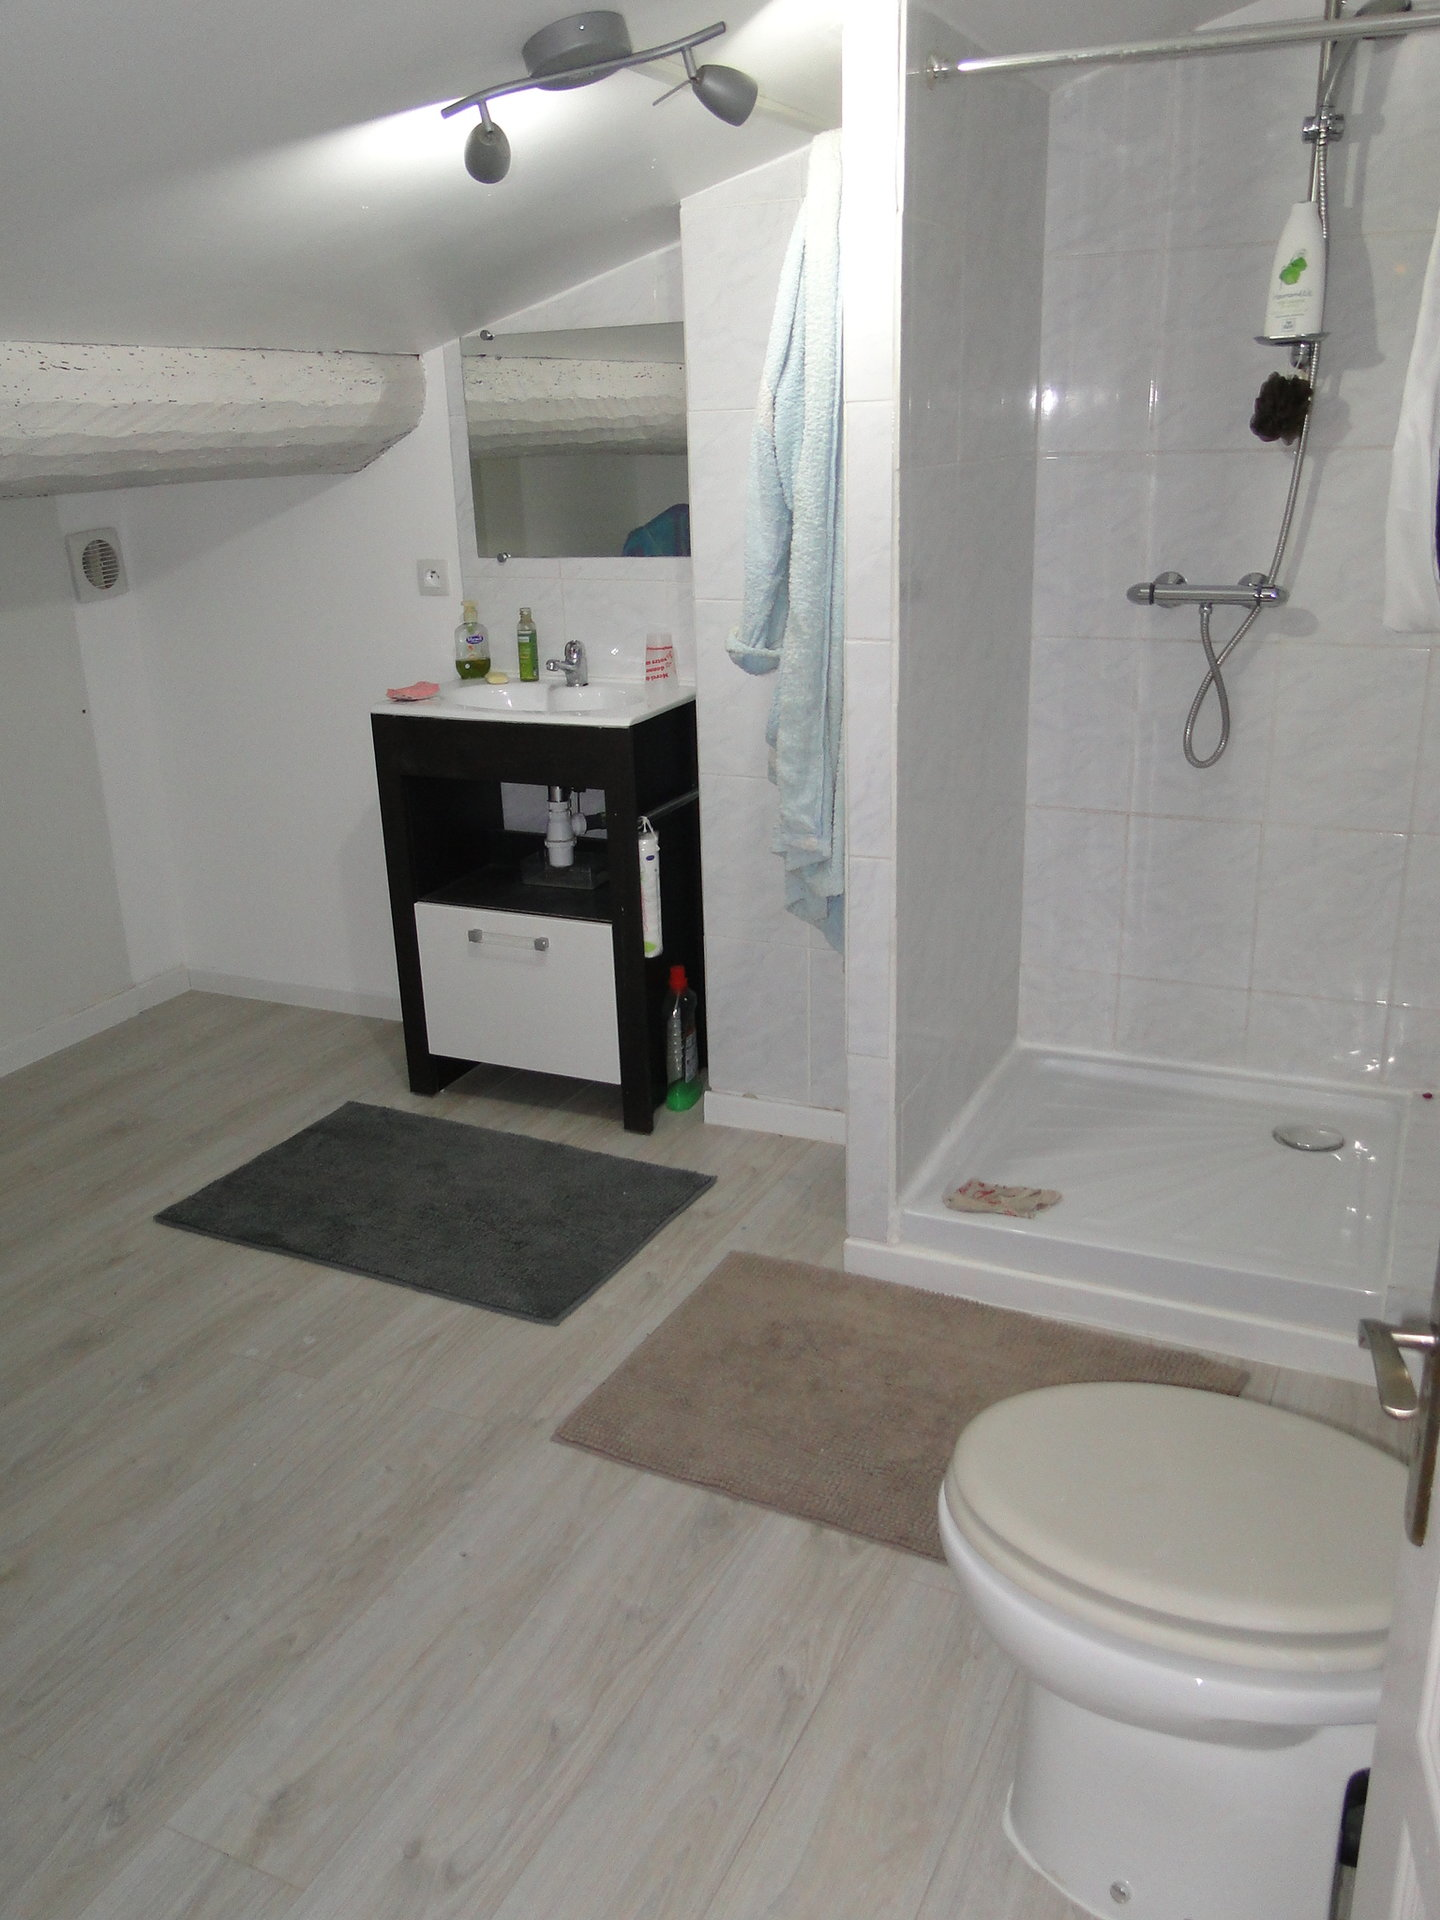 Appartement Duplex en plein cœur du village